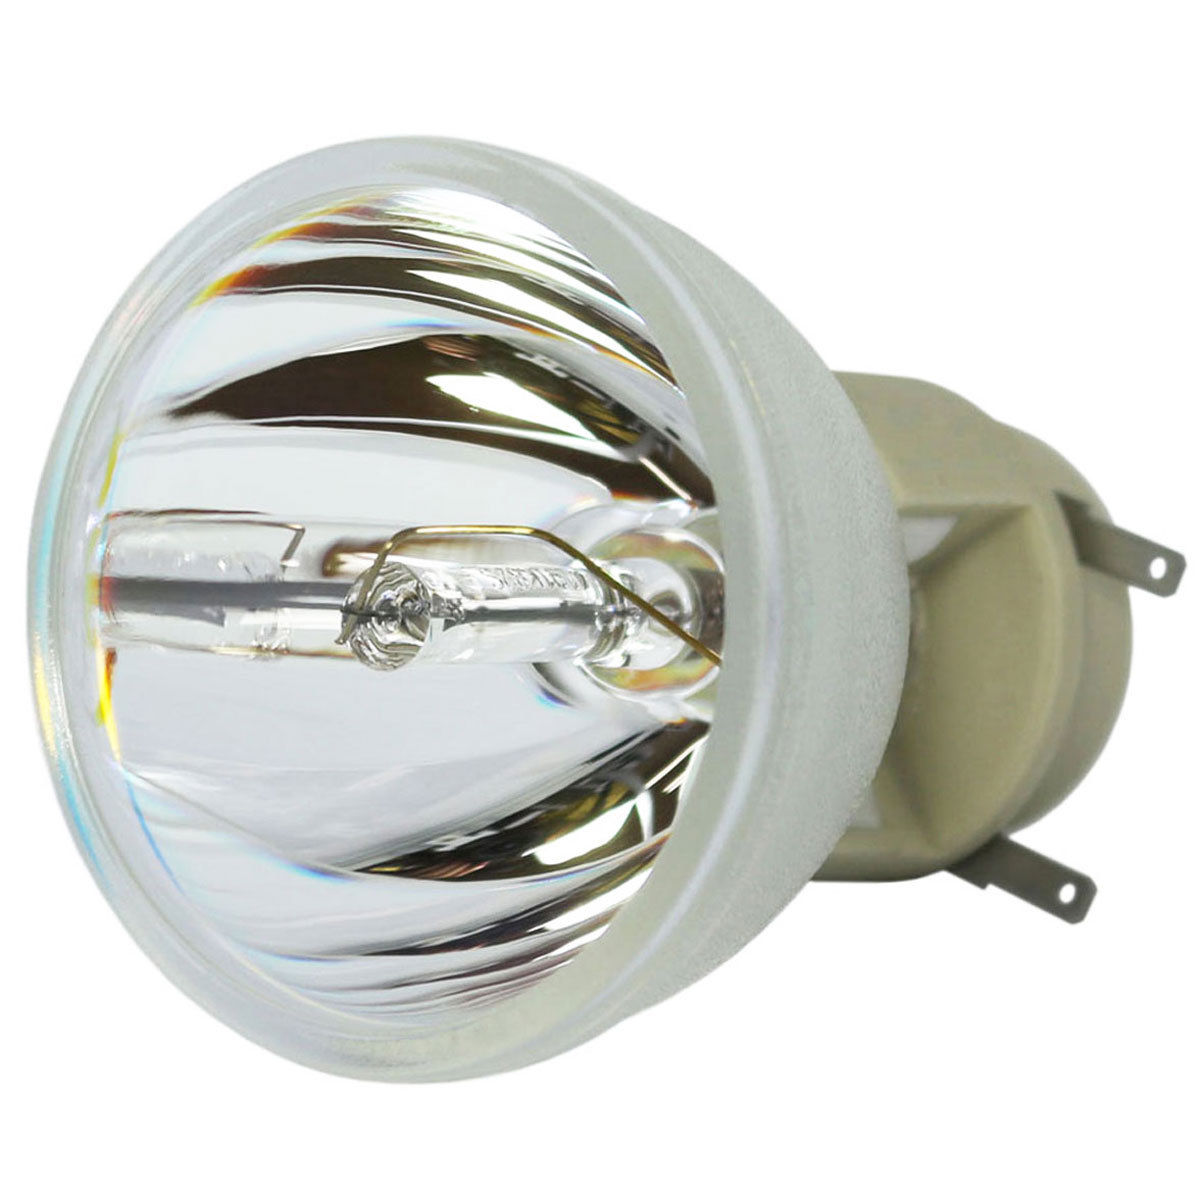 Compatible Bulb SP.8VH01GC01 for Optoma HD141X EH200ST GT1080 HD26 S316 X316 W316 DX346 BR323 BR326 DH1009 Projector Lamp Bulb<br>